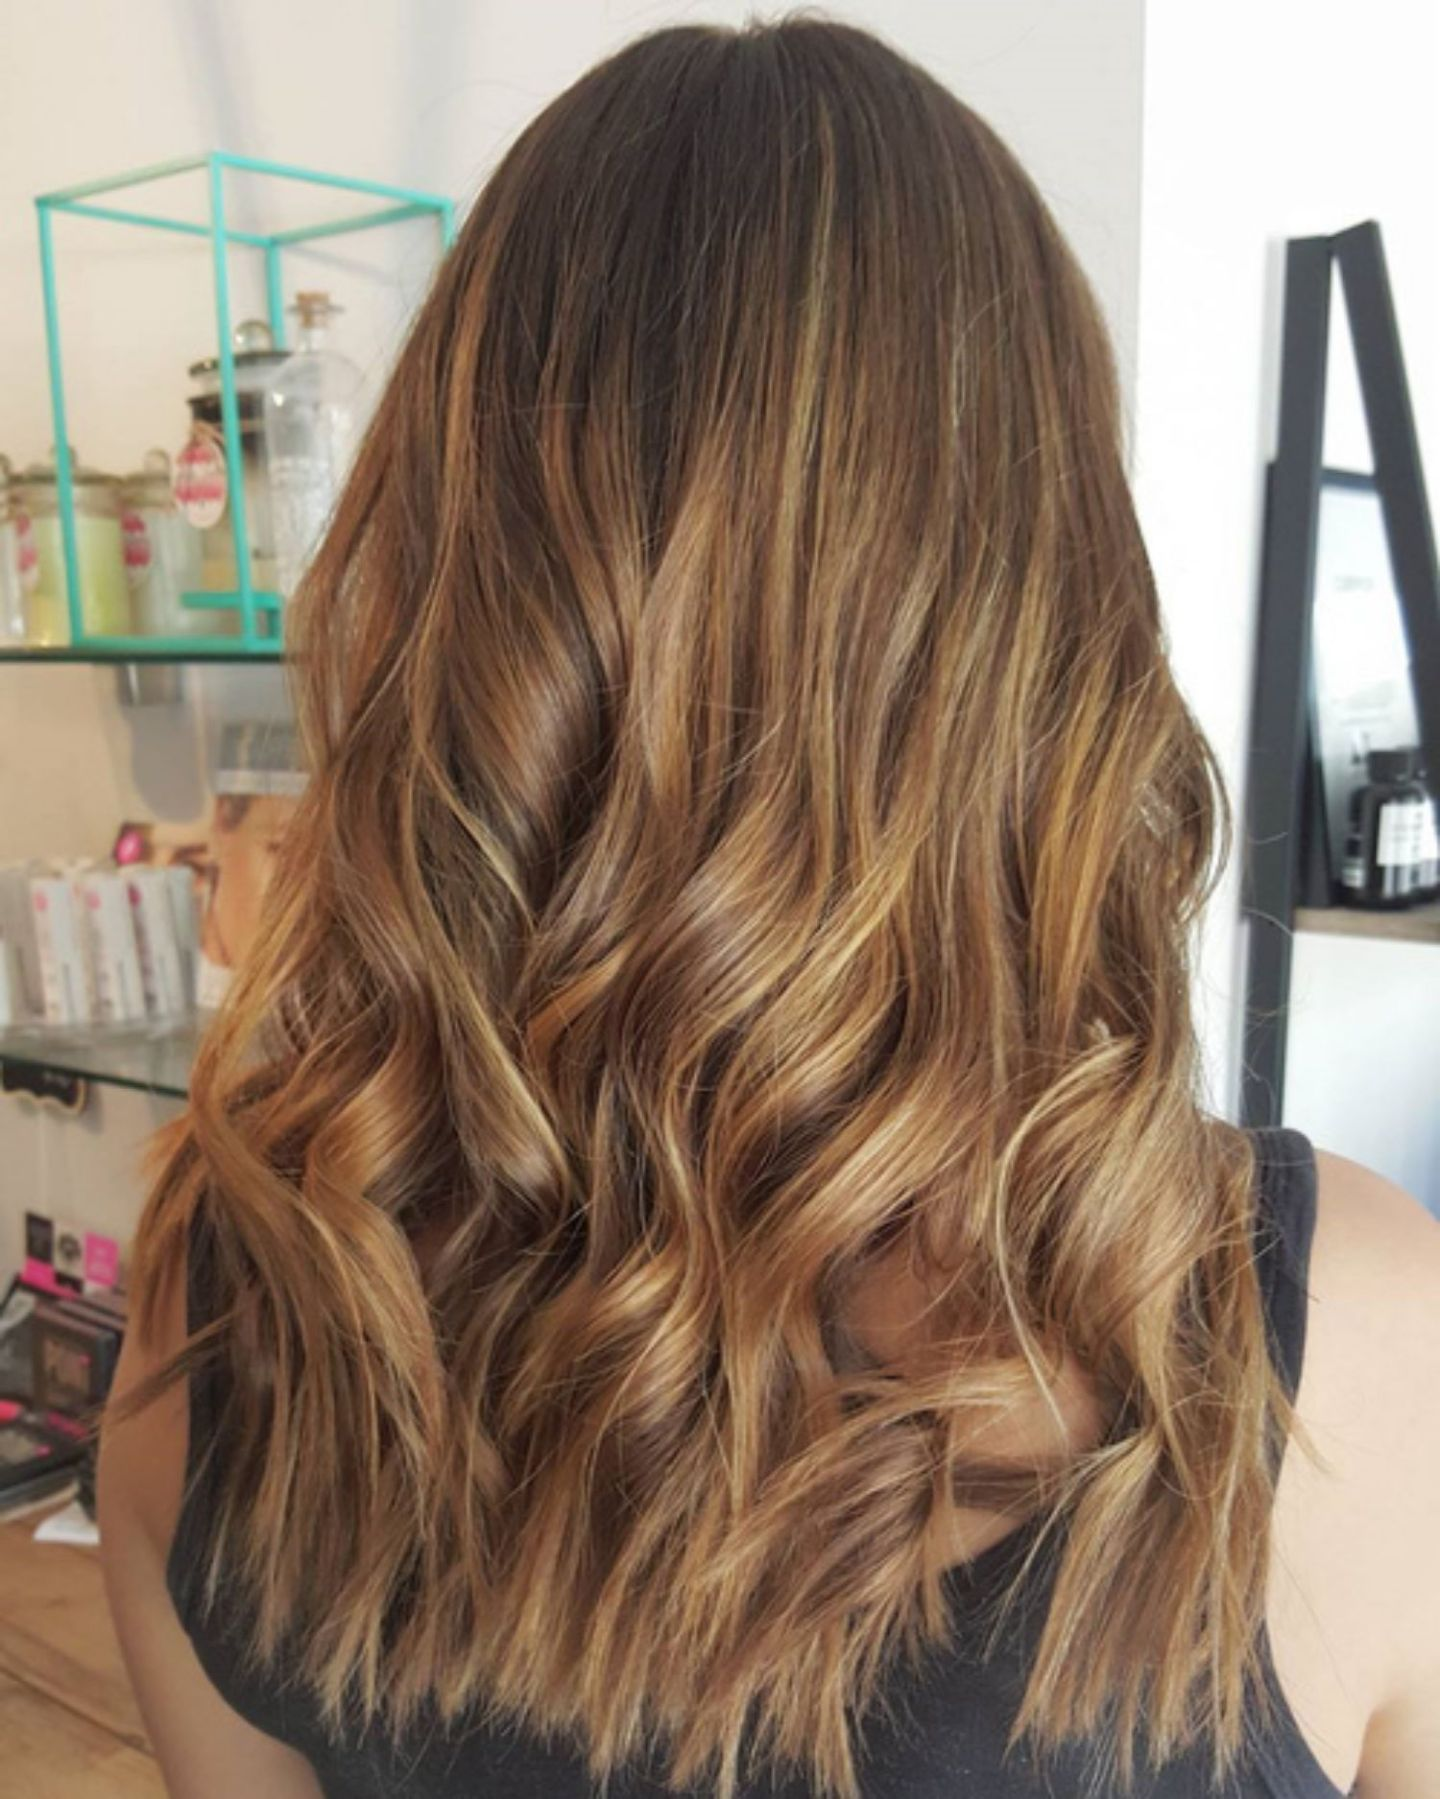 Brown Dark hair with caramel ombre